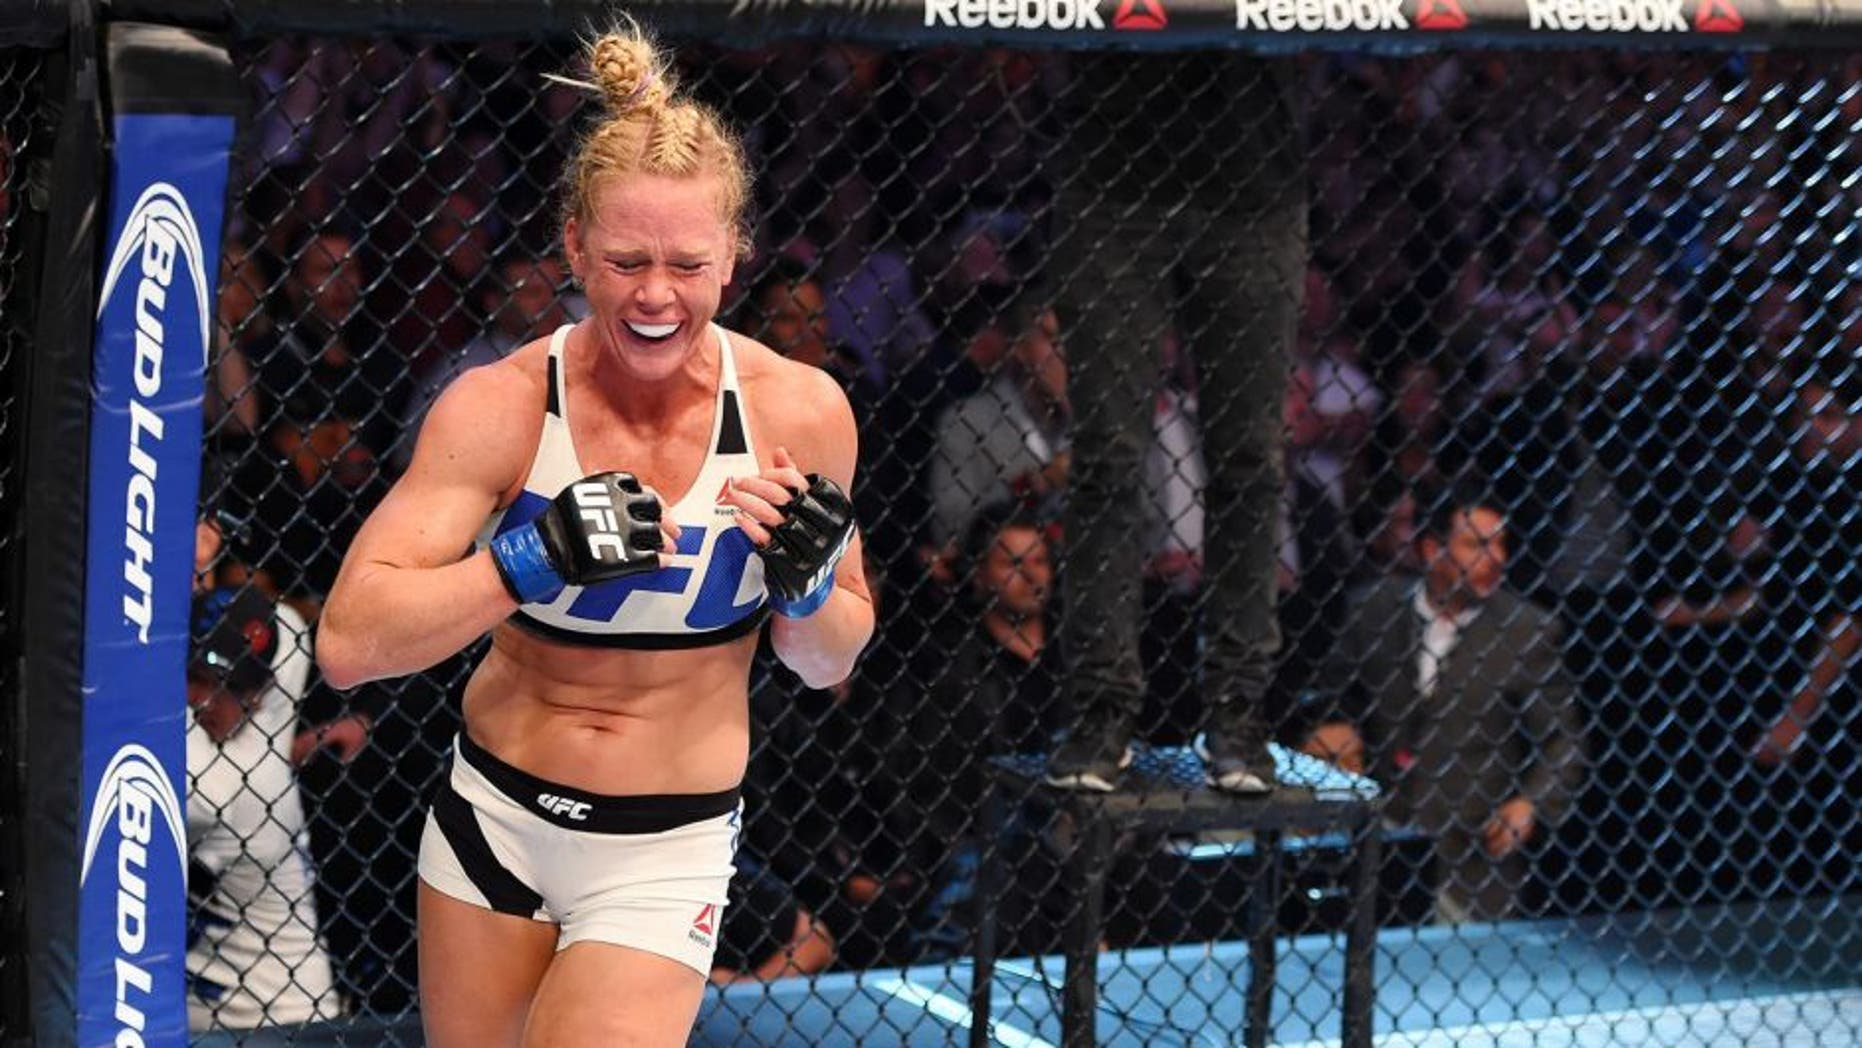 MELBOURNE, AUSTRALIA - NOVEMBER 15: Holly Holm celebrates her second round KO (head kick and punches) over Ronda Rousey (not pictured) in their UFC women's bantamweight championship bout during the UFC 193 event at Etihad Stadium on November 15, 2015 in Melbourne, Australia. (Photo by Josh Hedges/Zuffa LLC/Zuffa LLC via Getty Images)